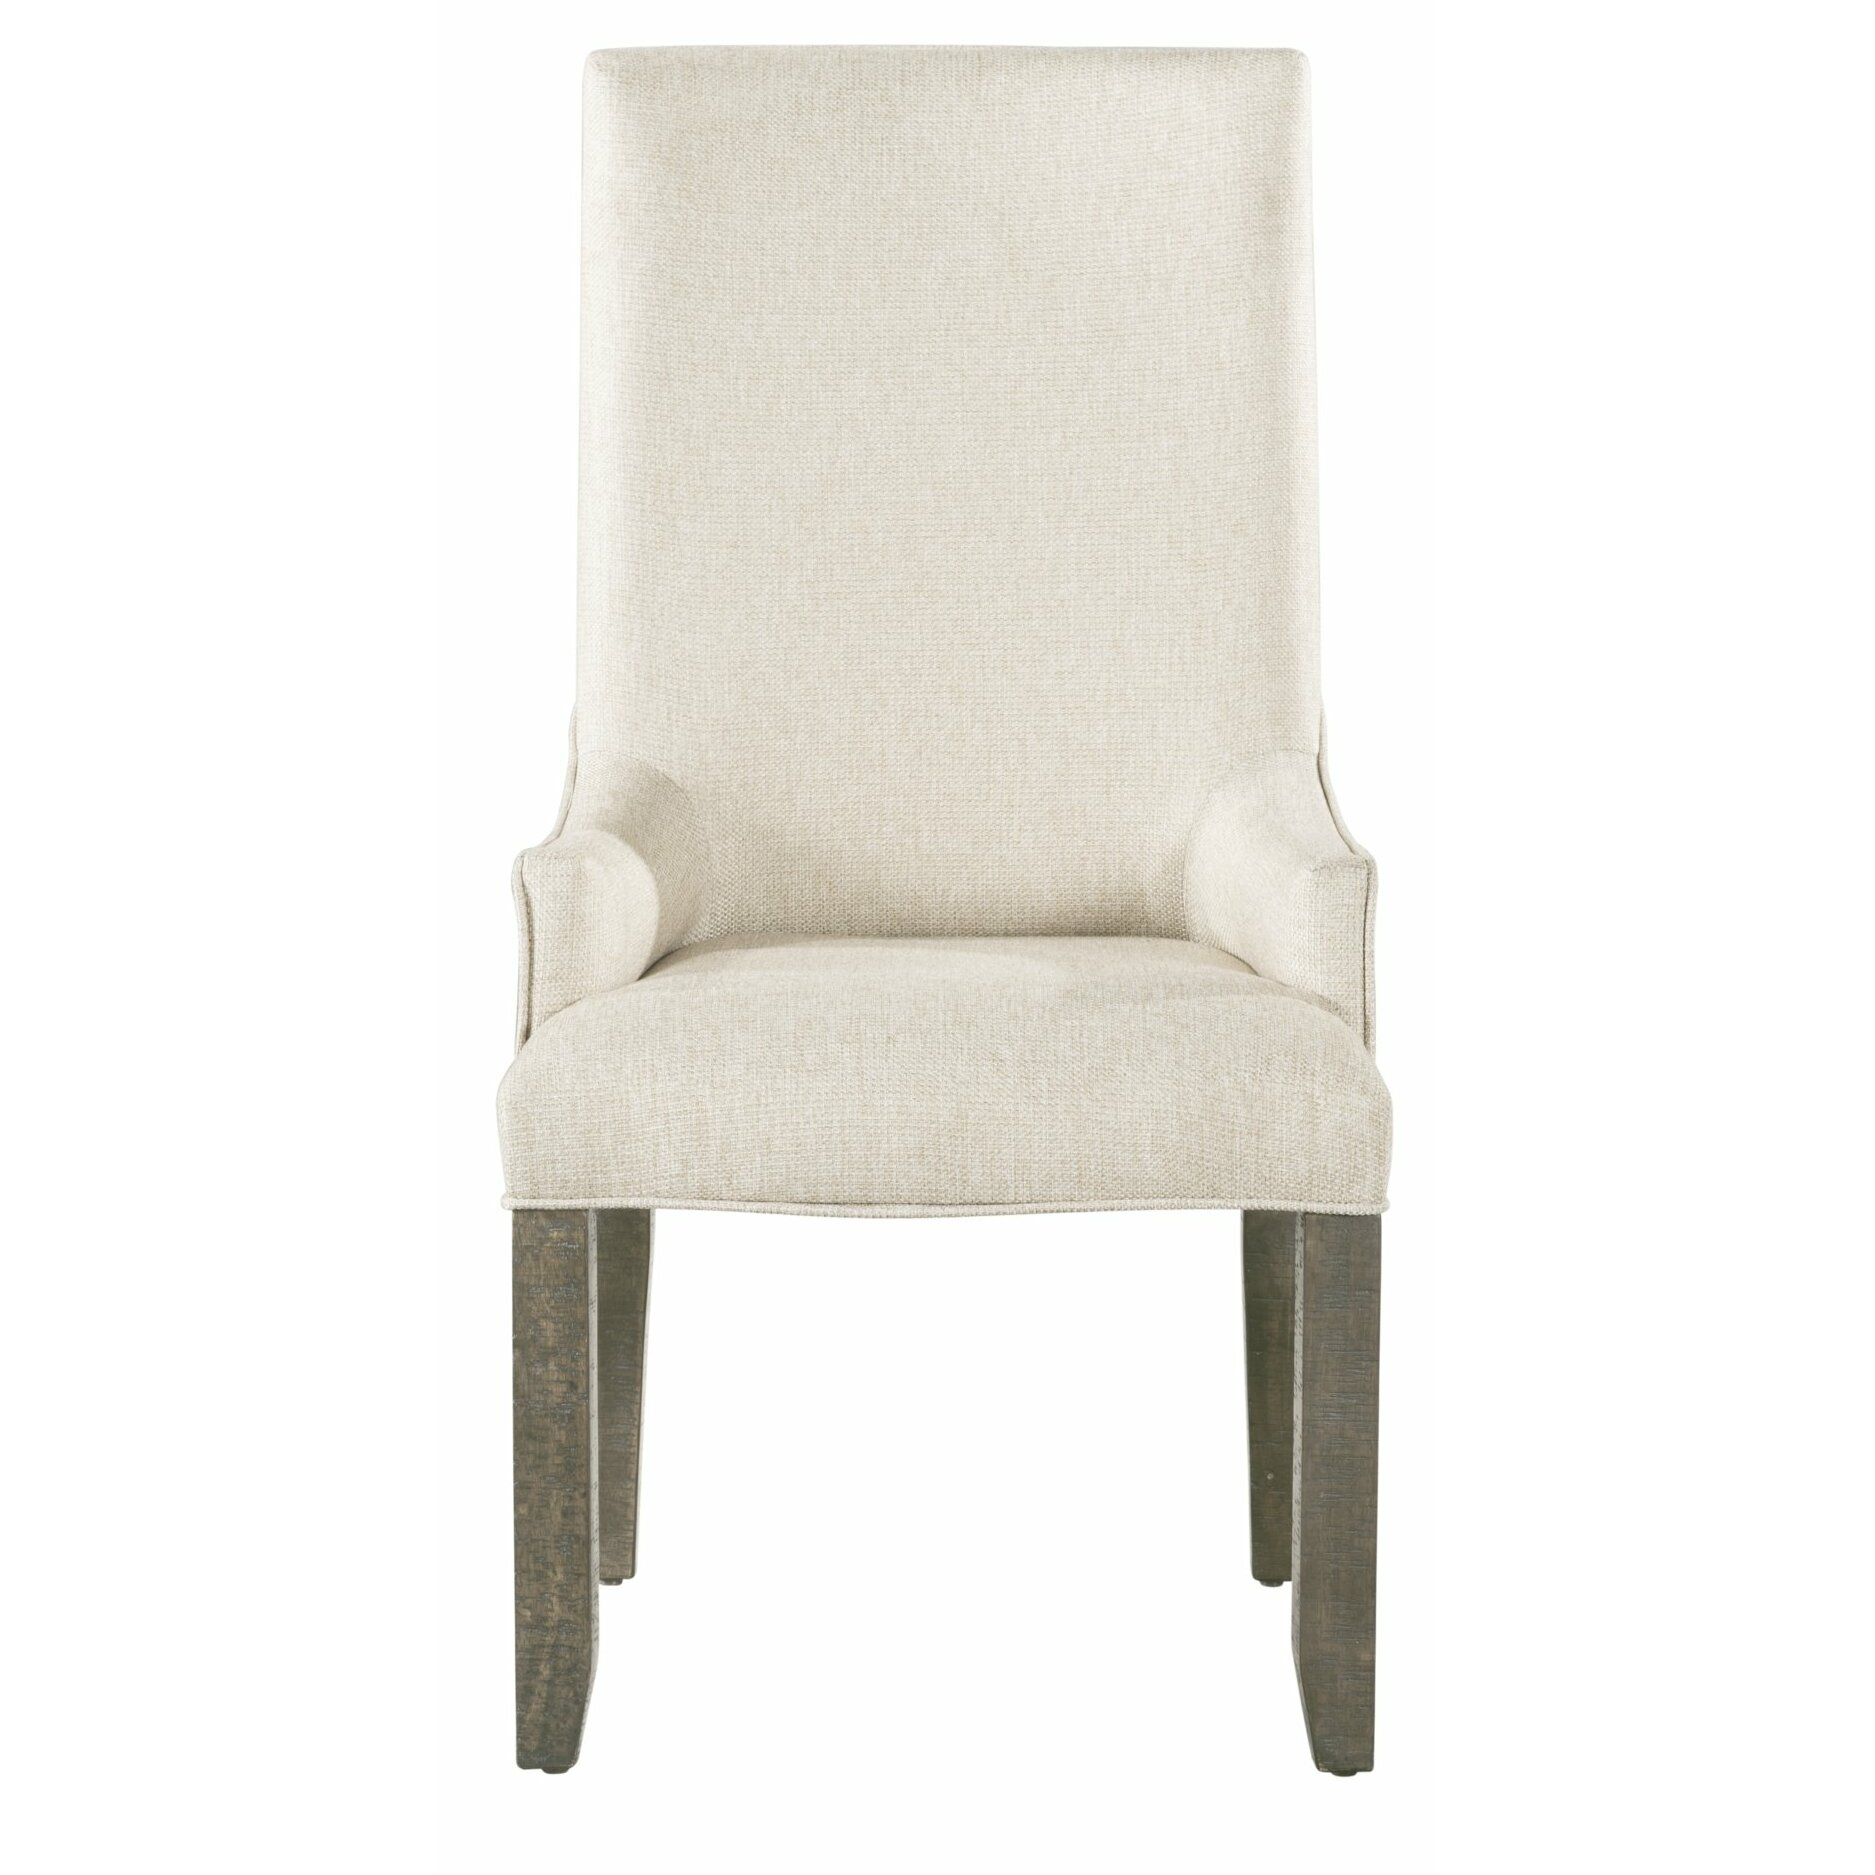 Laurel foundry modern farmhouse sephora parson chair wayfair for Modern farmhouse dining chairs